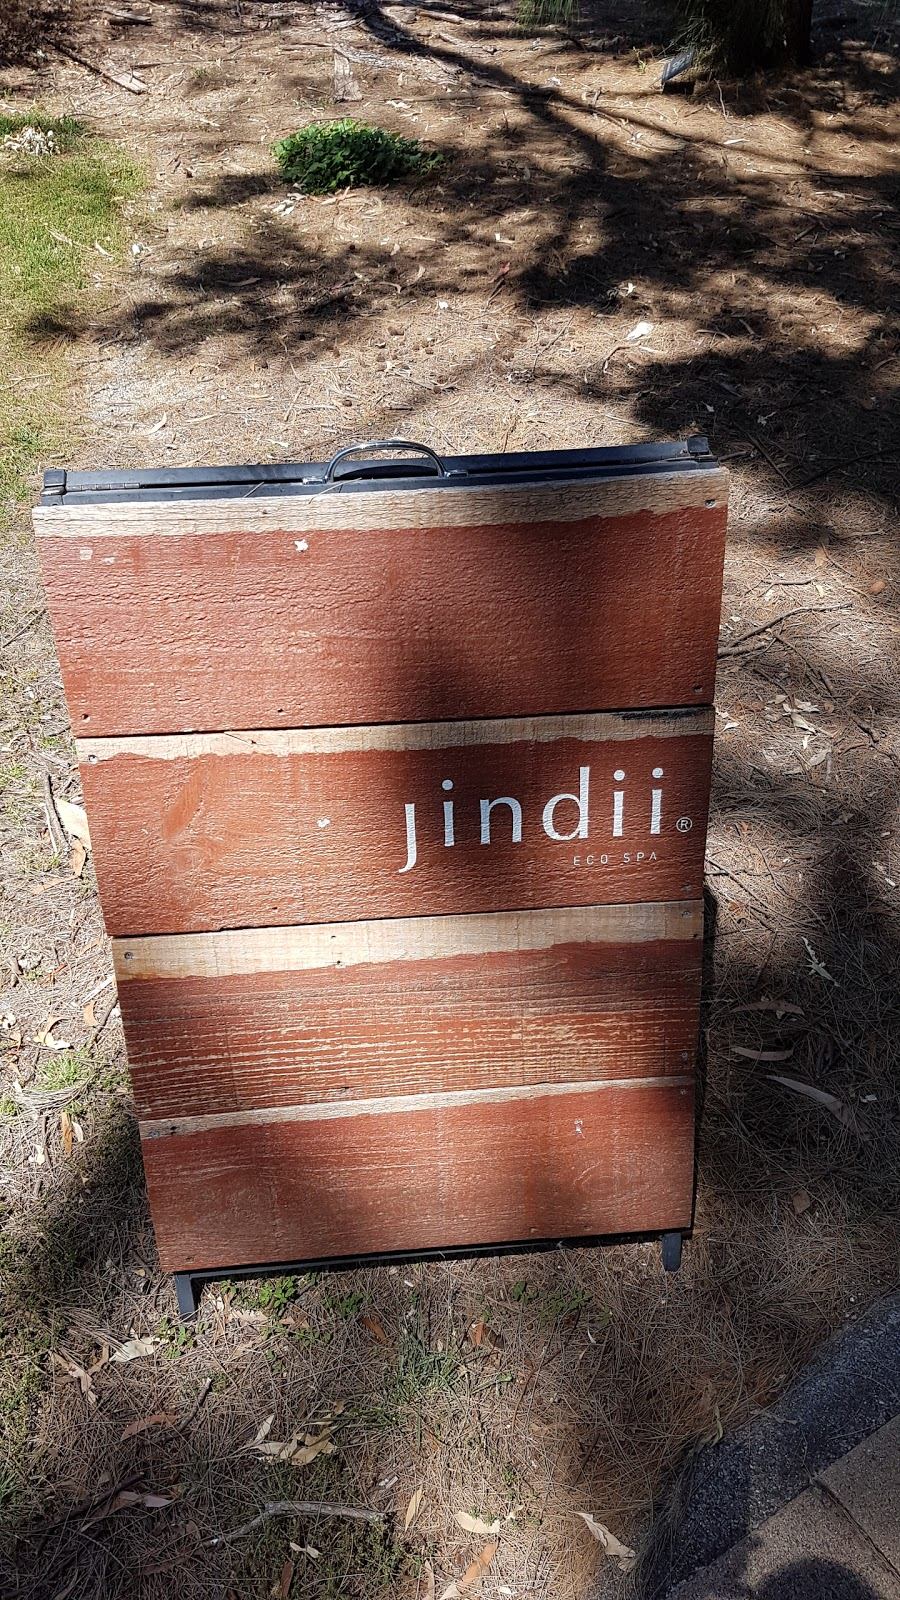 Jindii EcoSpa | spa | Clunies Ross St, Acton ACT 2601, Australia | 0262578777 OR +61 2 6257 8777